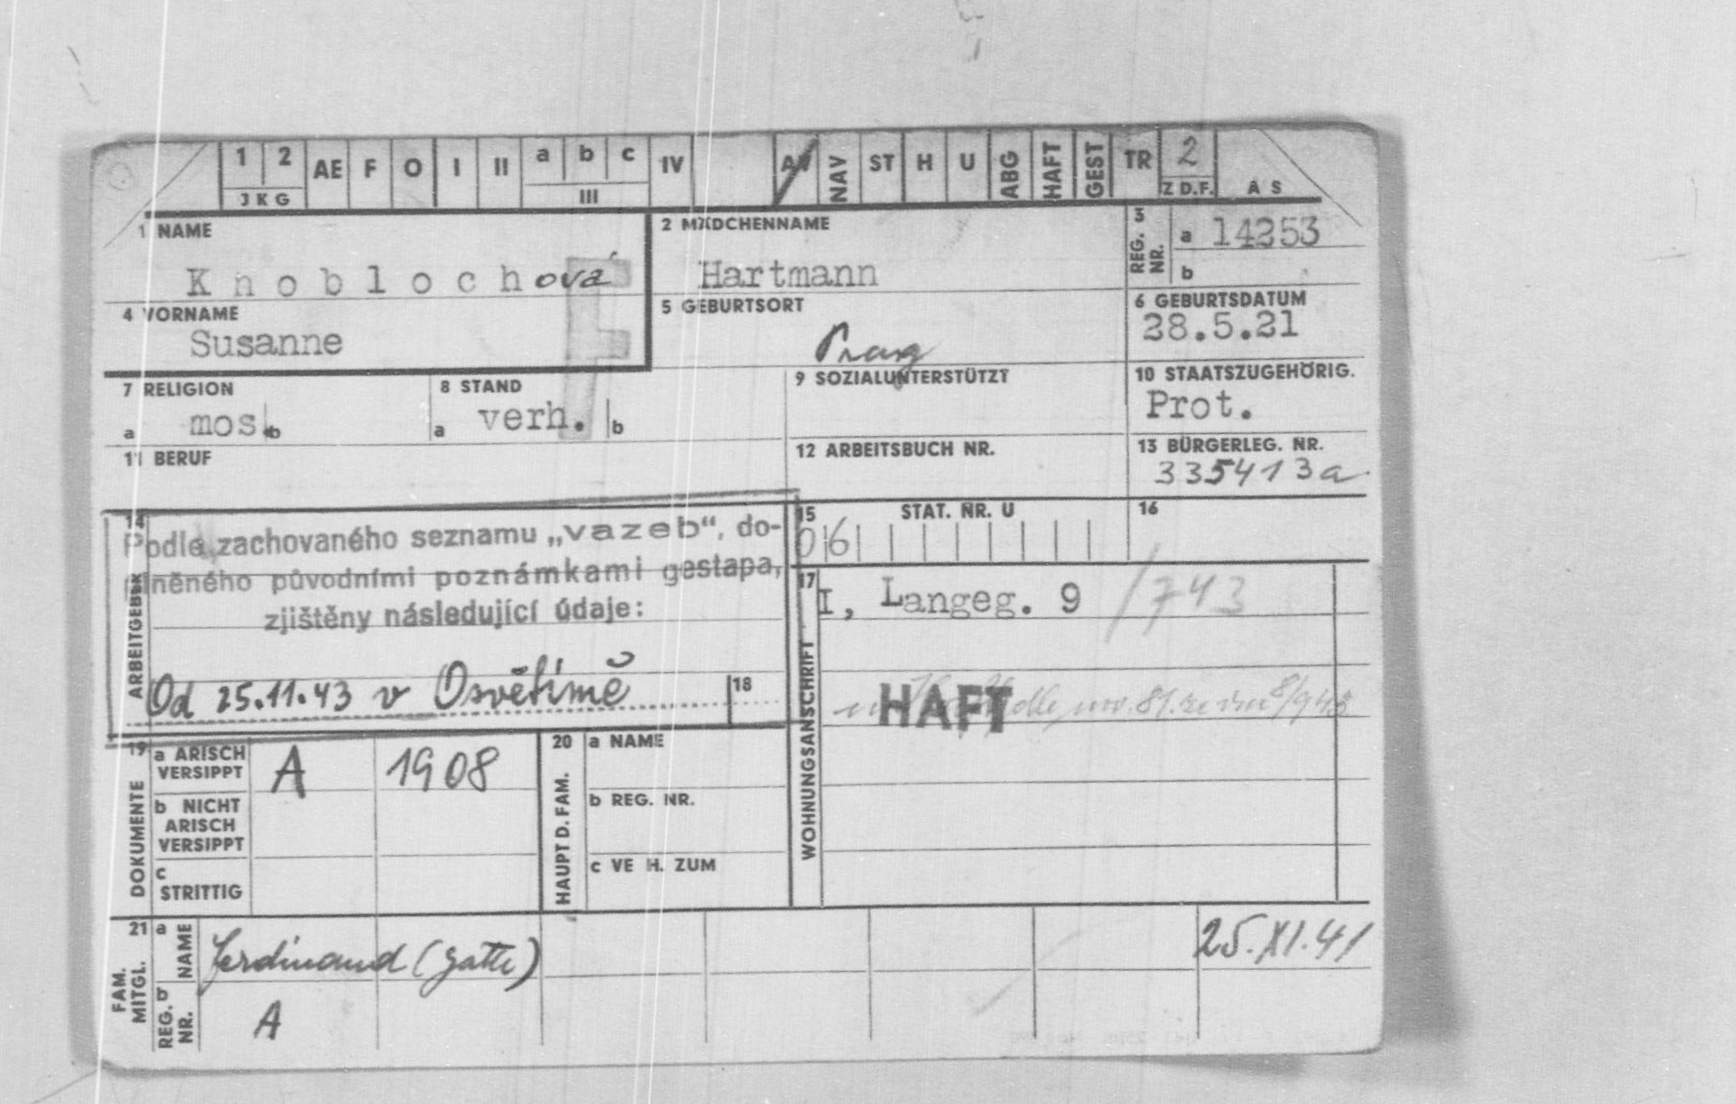 A document with information relating to a prisoner from Auschwitz-Birkenau